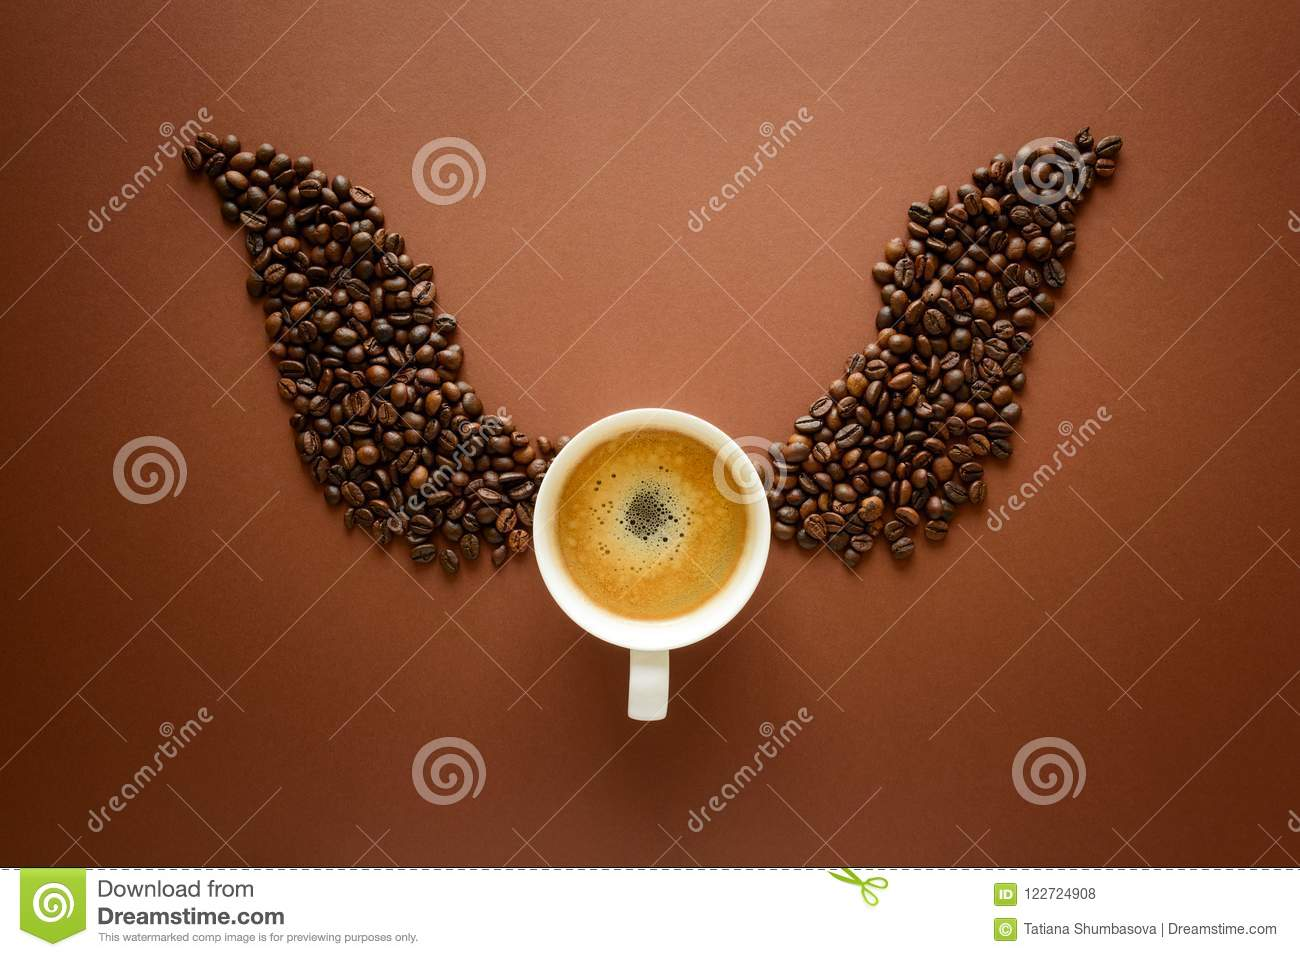 Cup of espresso with wings from coffee beans on brown background. Good morning concept. Top view. Flat lay.